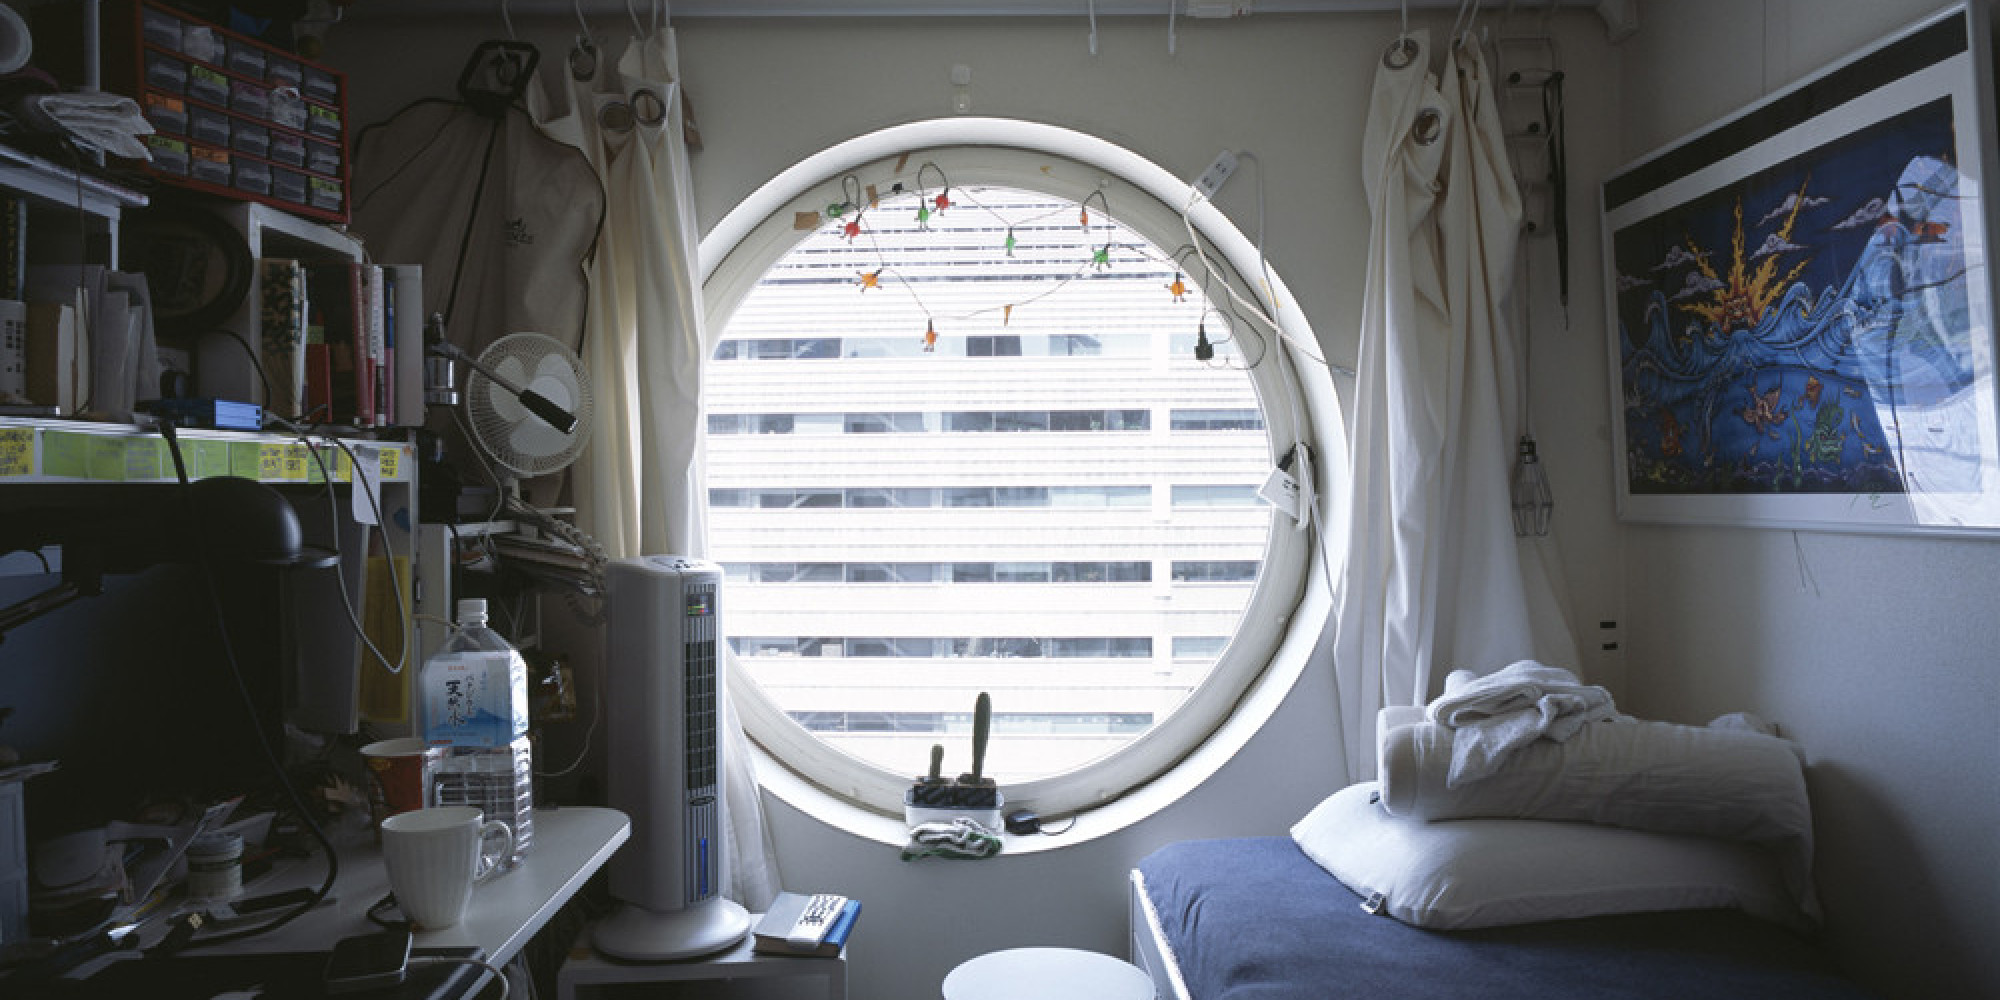 Tokyo Micro Apartment Photographs Capture The Beginning Of ...